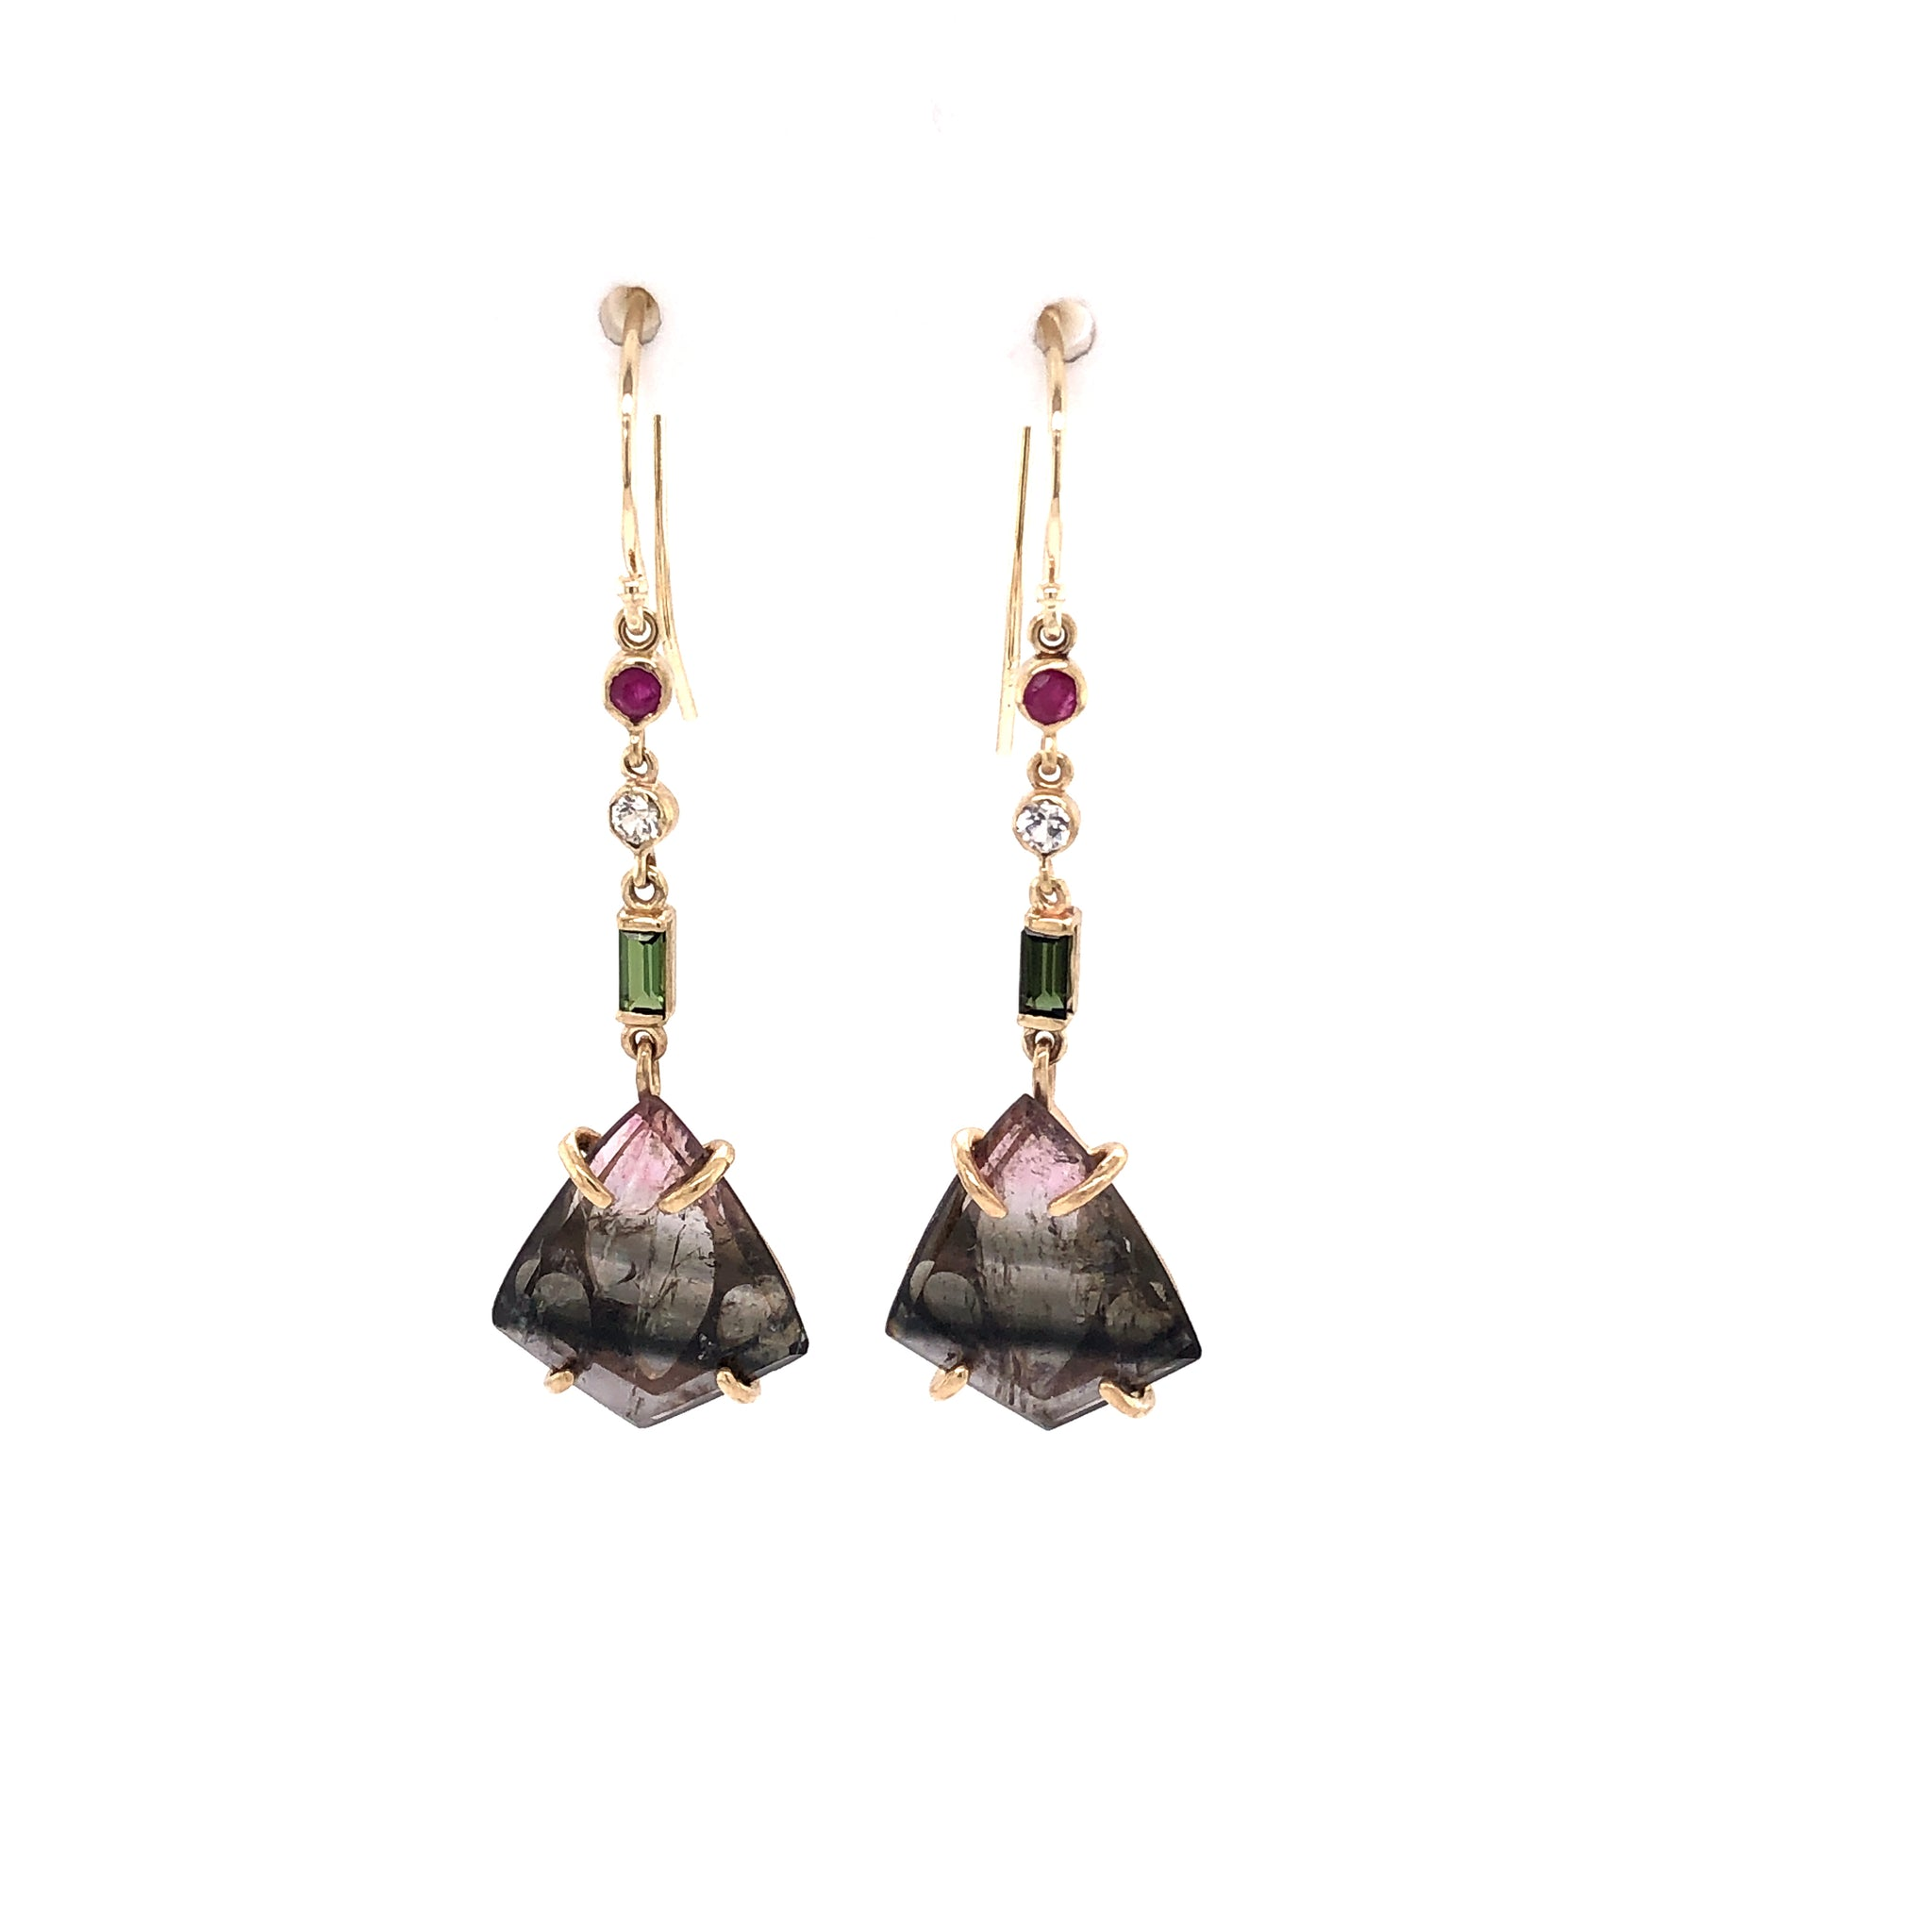 Tourmaline, Ruby, and White Sapphire Earrings, Handmade in 14k Gold (One-of-a-Kind)